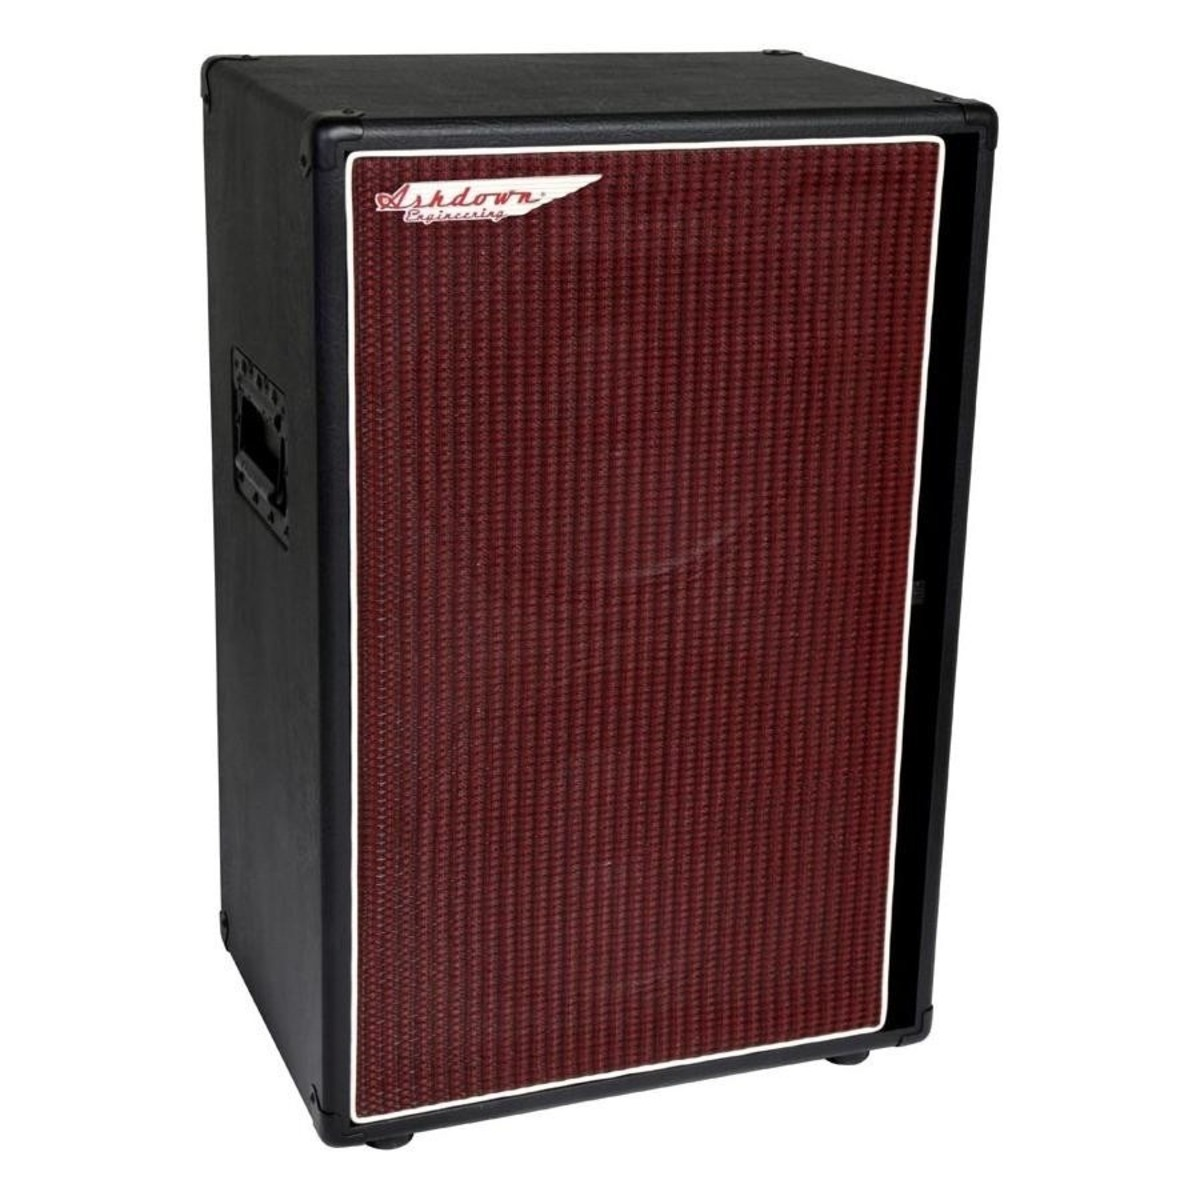 ashdown vs 212 200 bass amp cabinet nearly new at. Black Bedroom Furniture Sets. Home Design Ideas